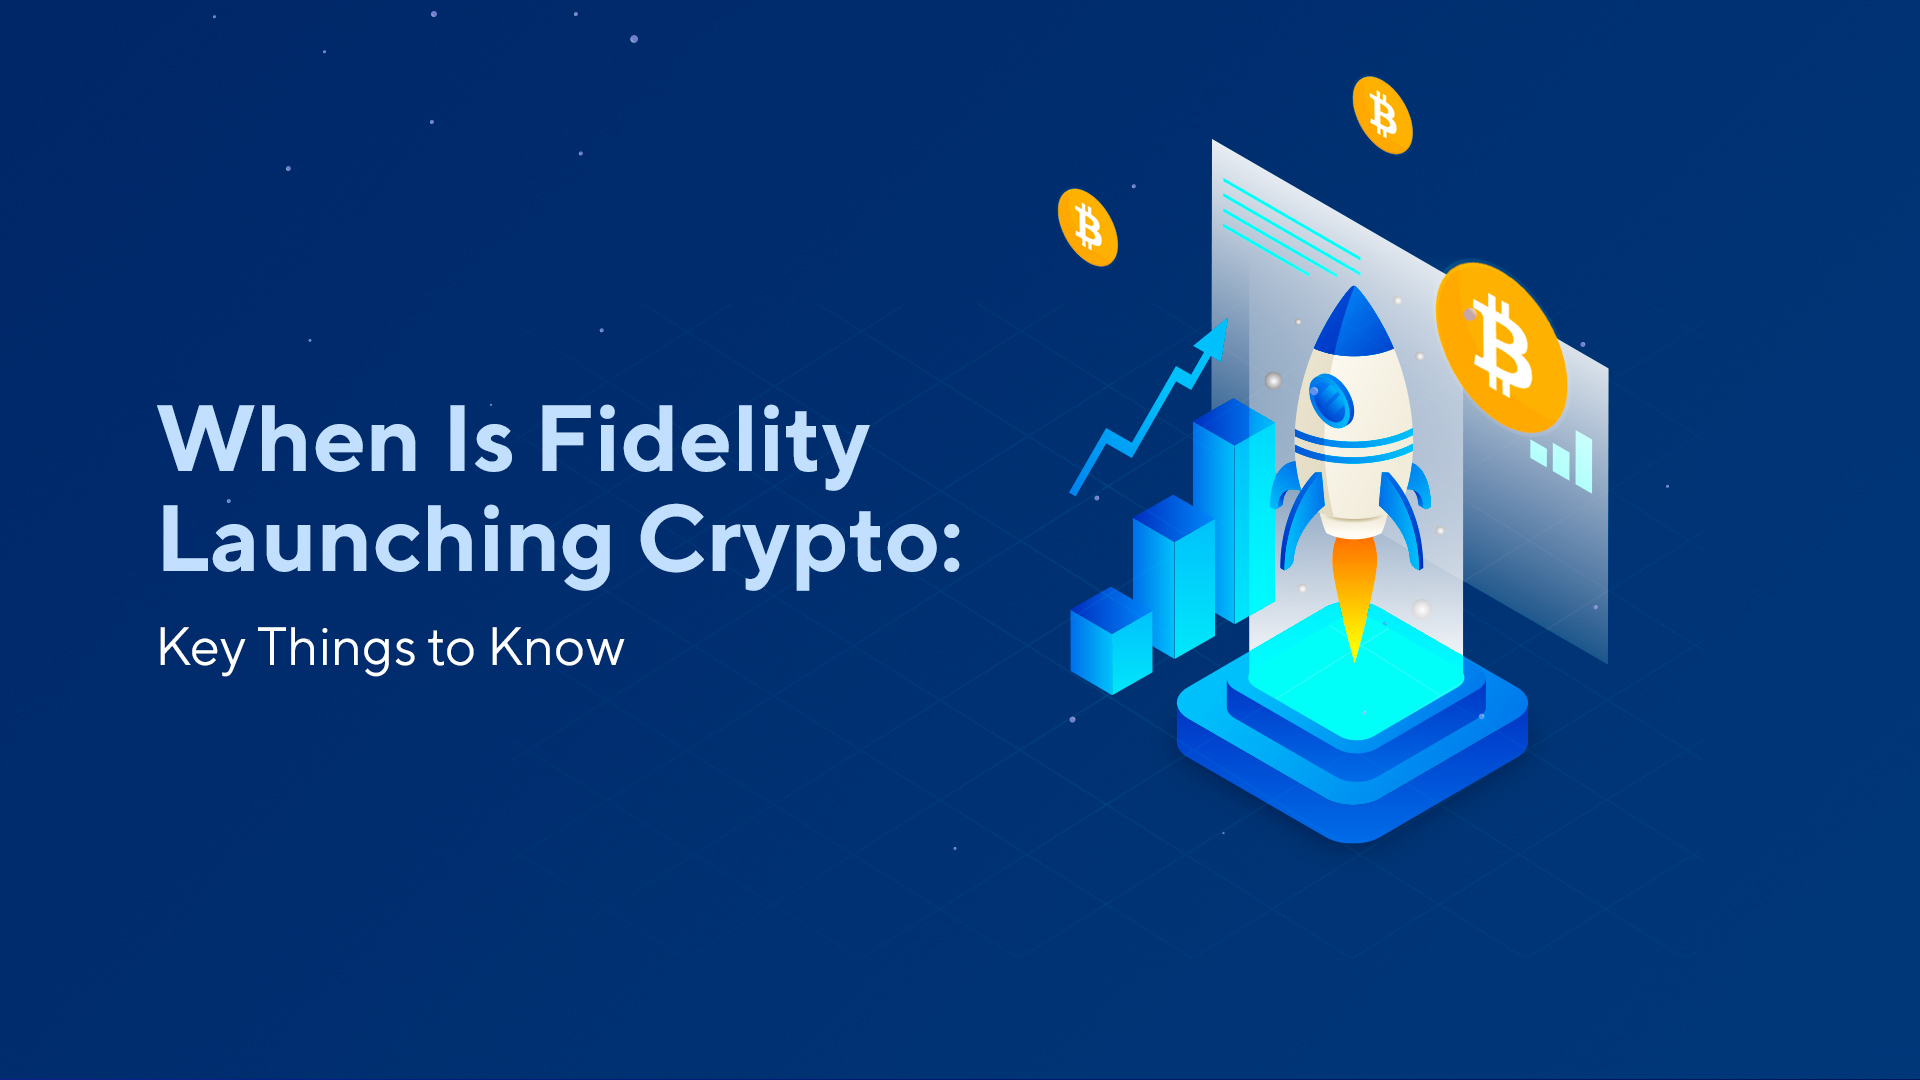 When Is Fidelity Launching Crypto: Key Things to Know